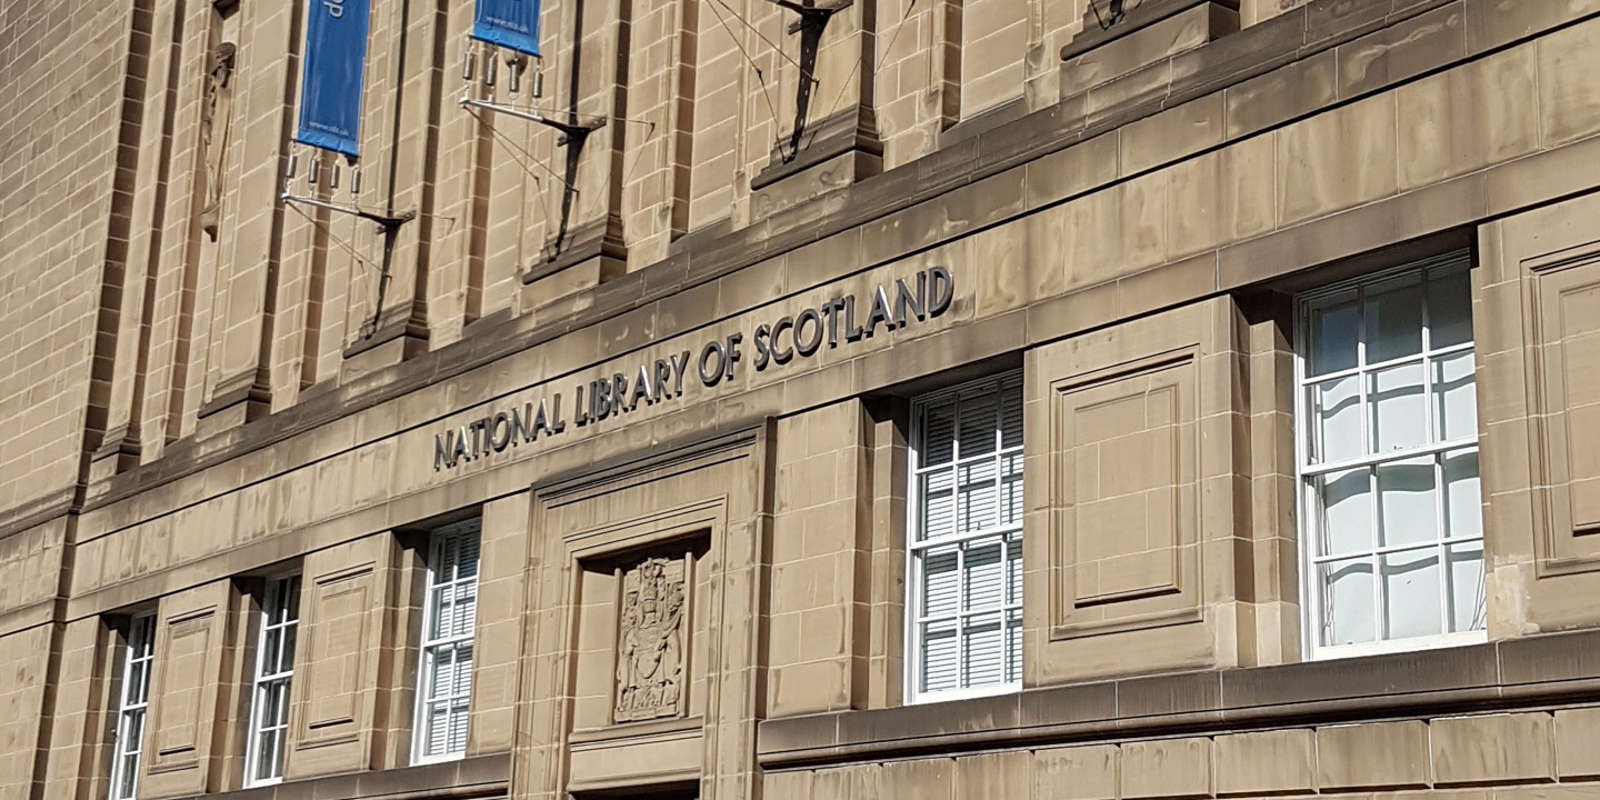 Windows and doorway of National Library of Scotland